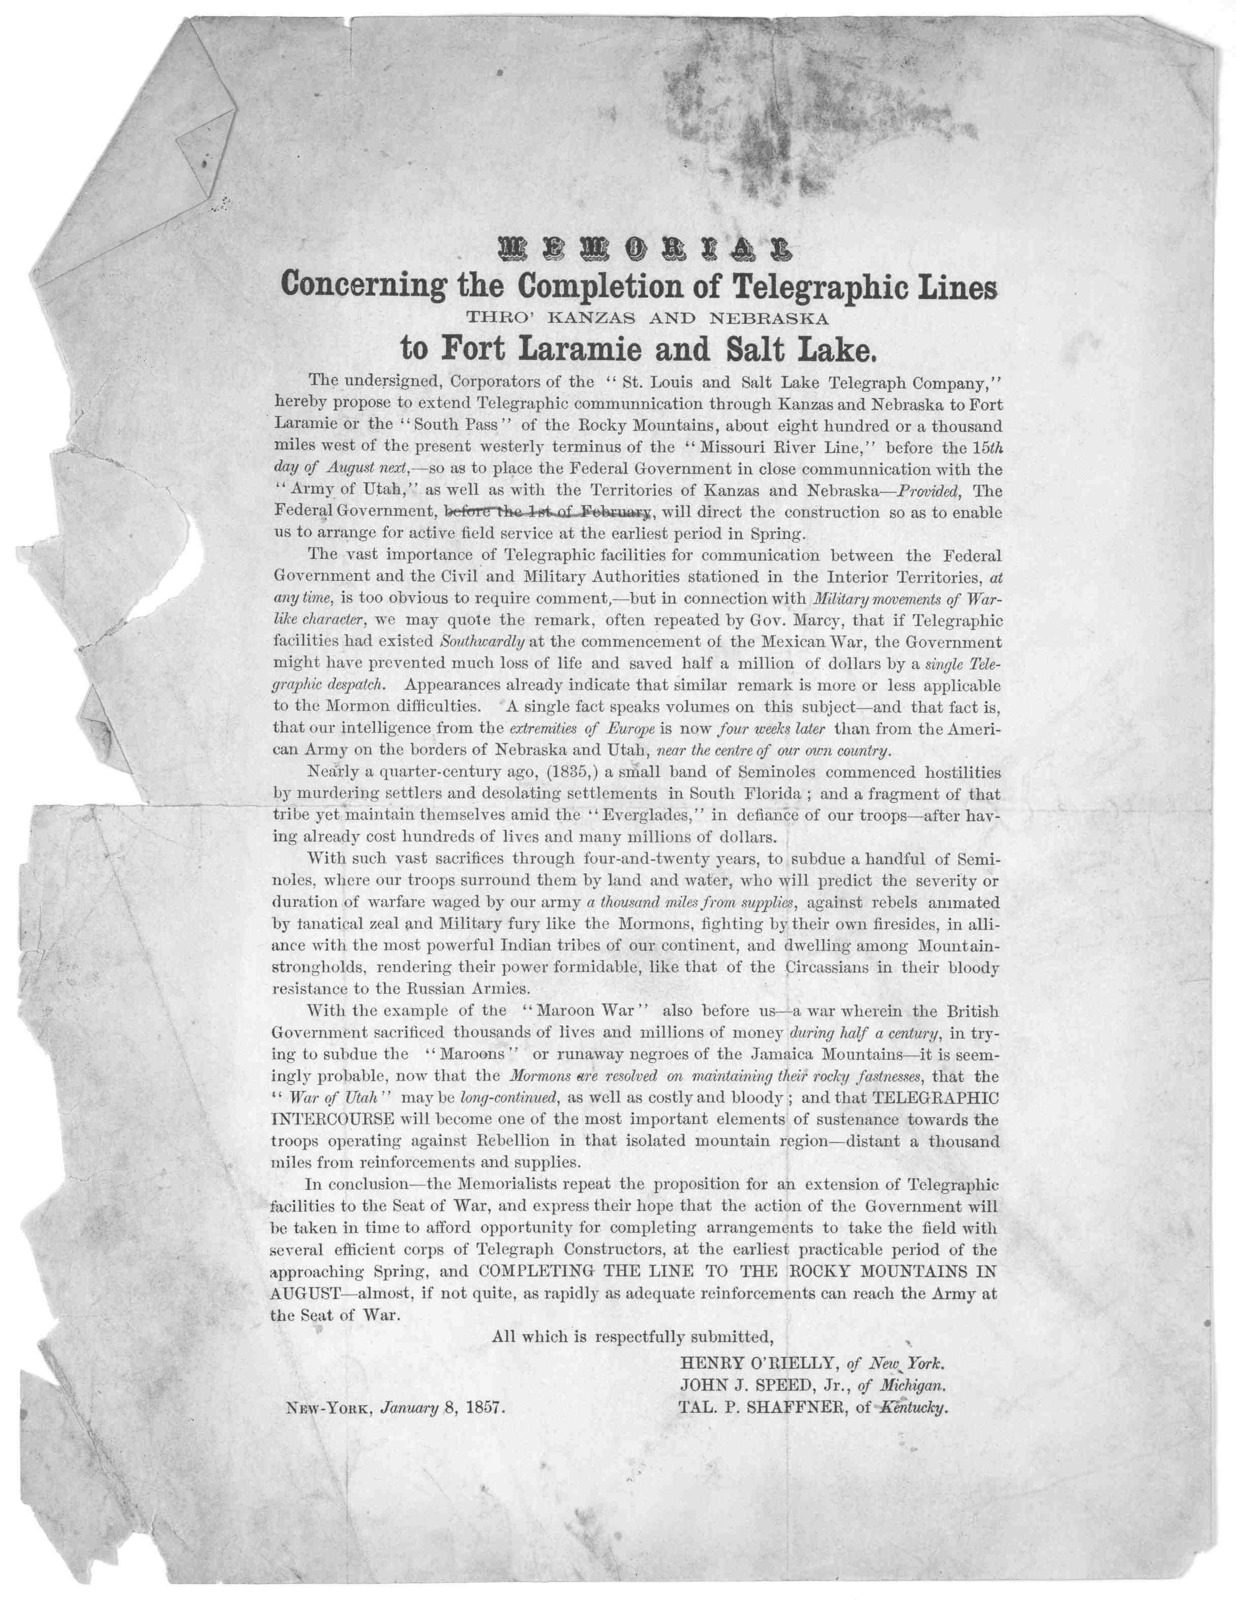 Memorial concerning the completion of telegraphic lines thro' Kanzas [sic] and Nebraska to Fort Laramie and Salt Lake. New York, January 8, 1857.